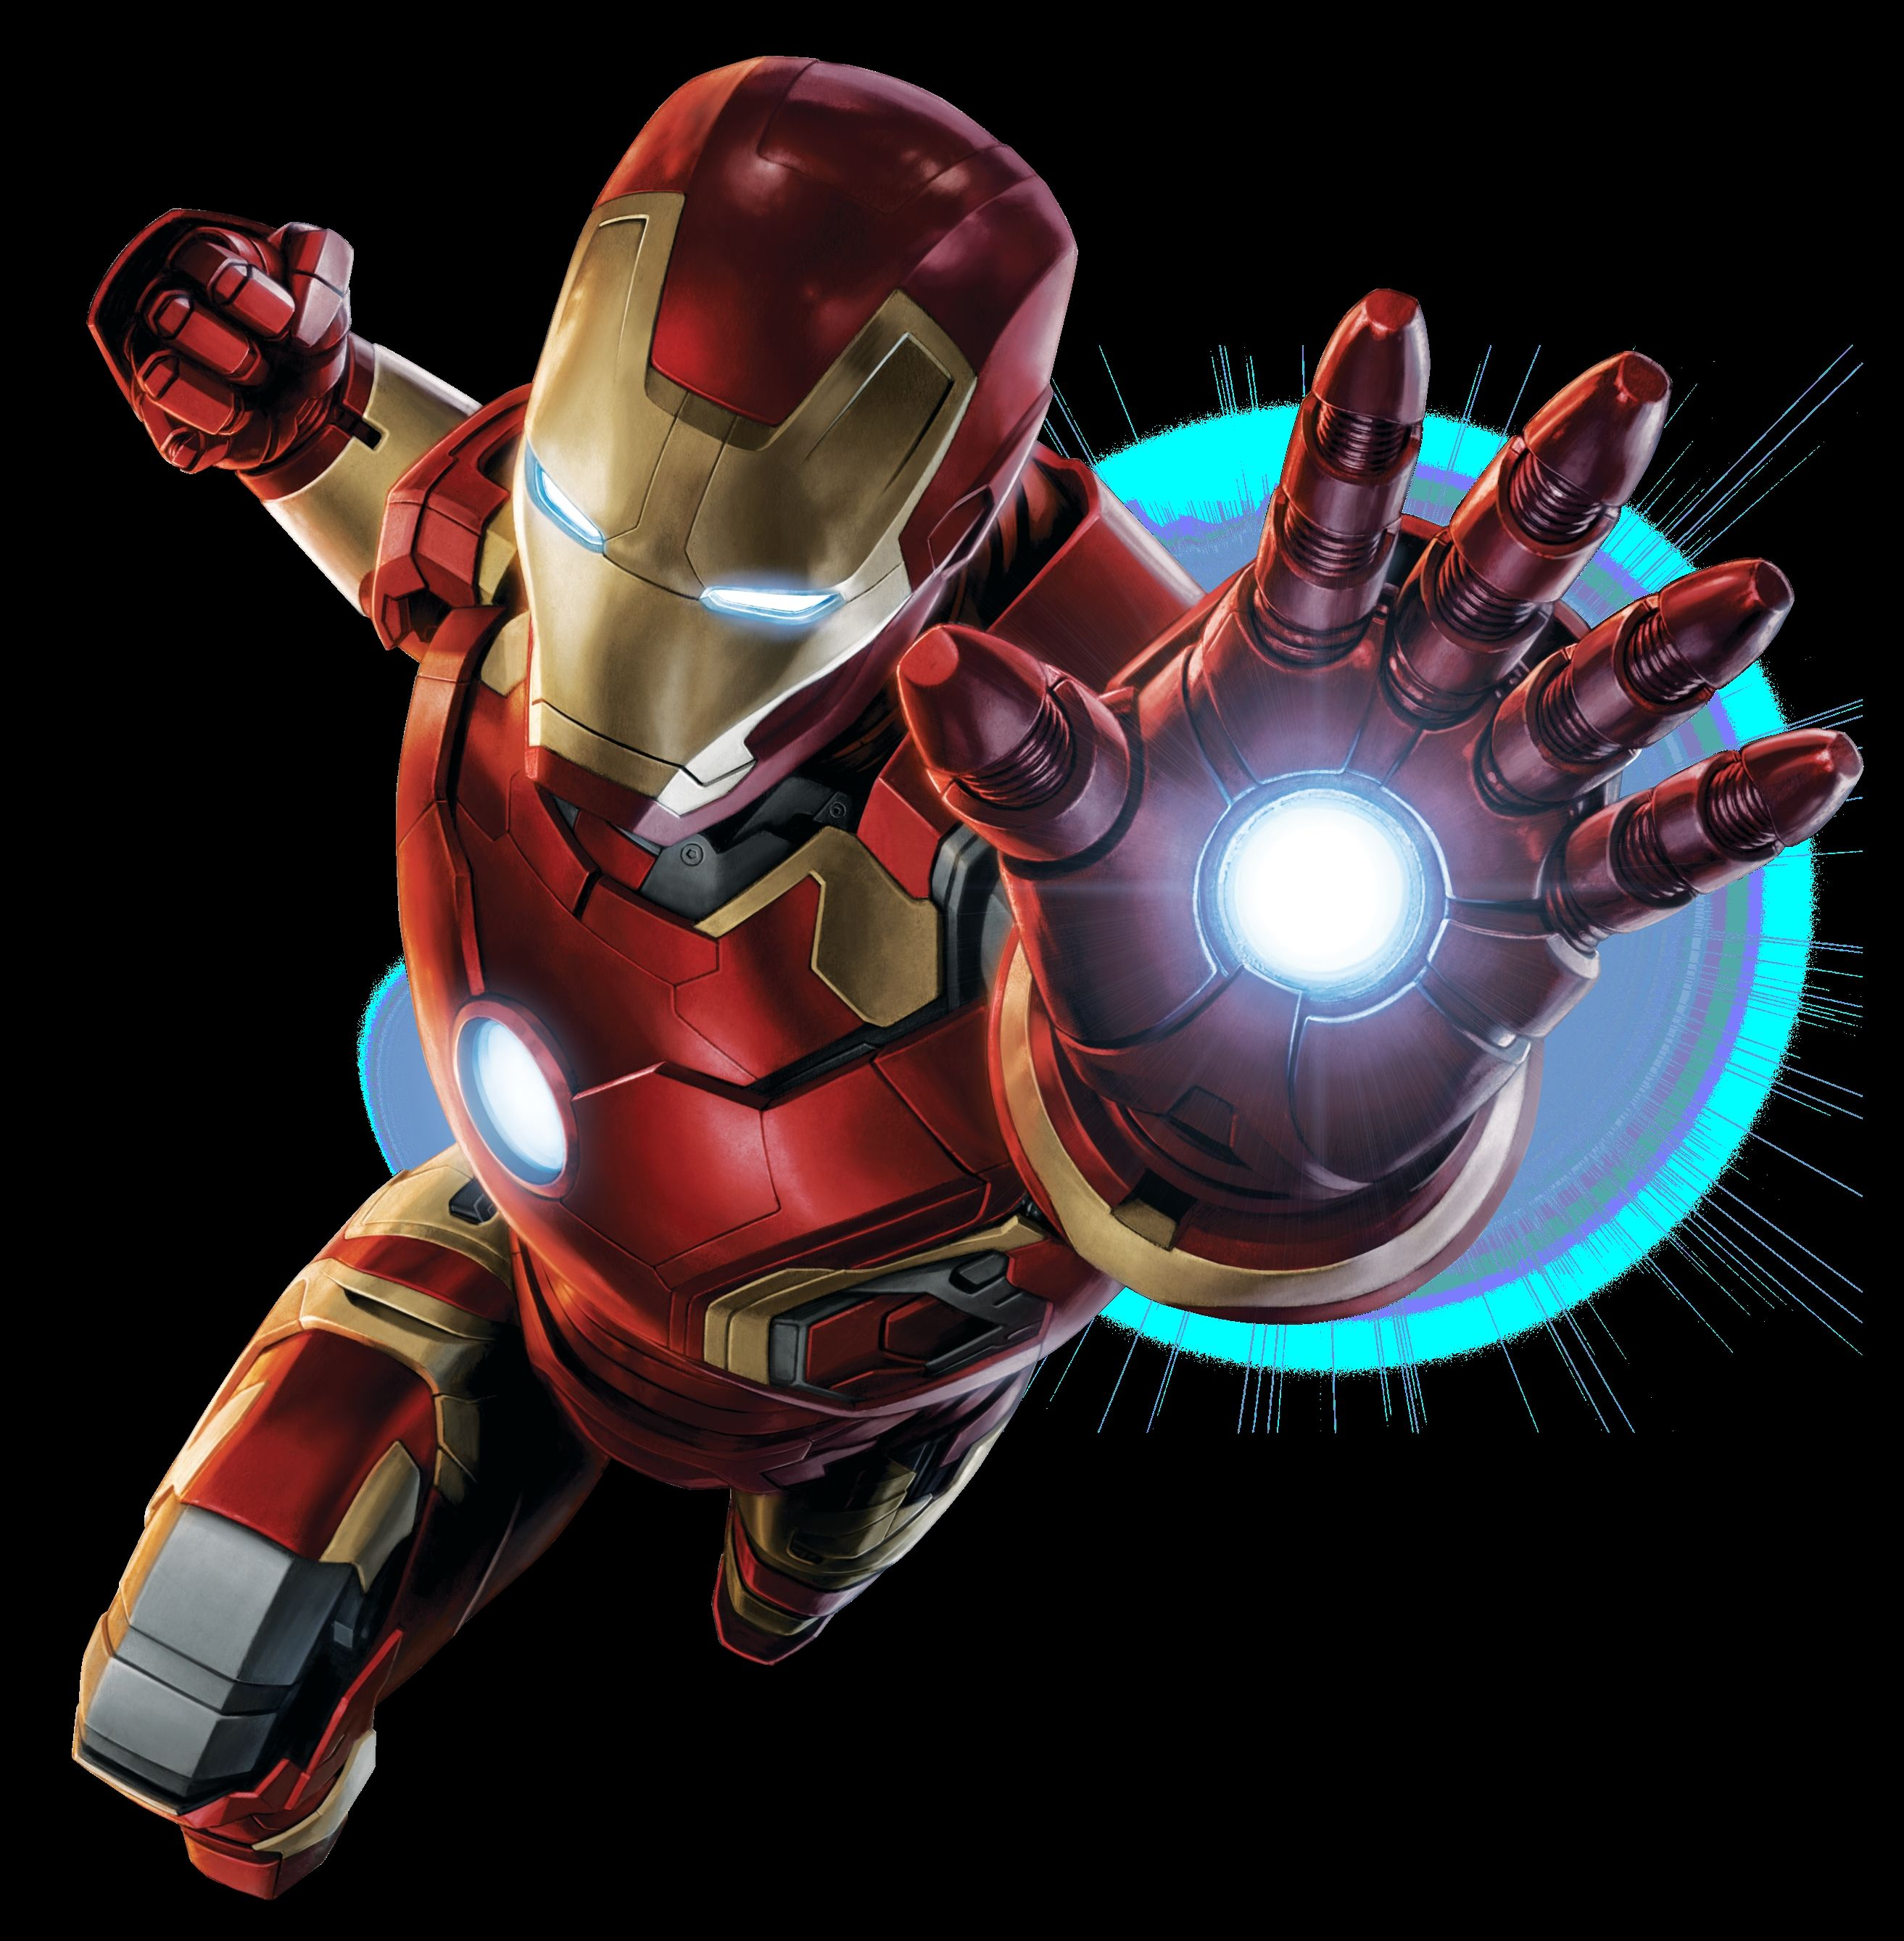 Iron Man 4 Hd Free Wallpaper Download Iron man, Avengers